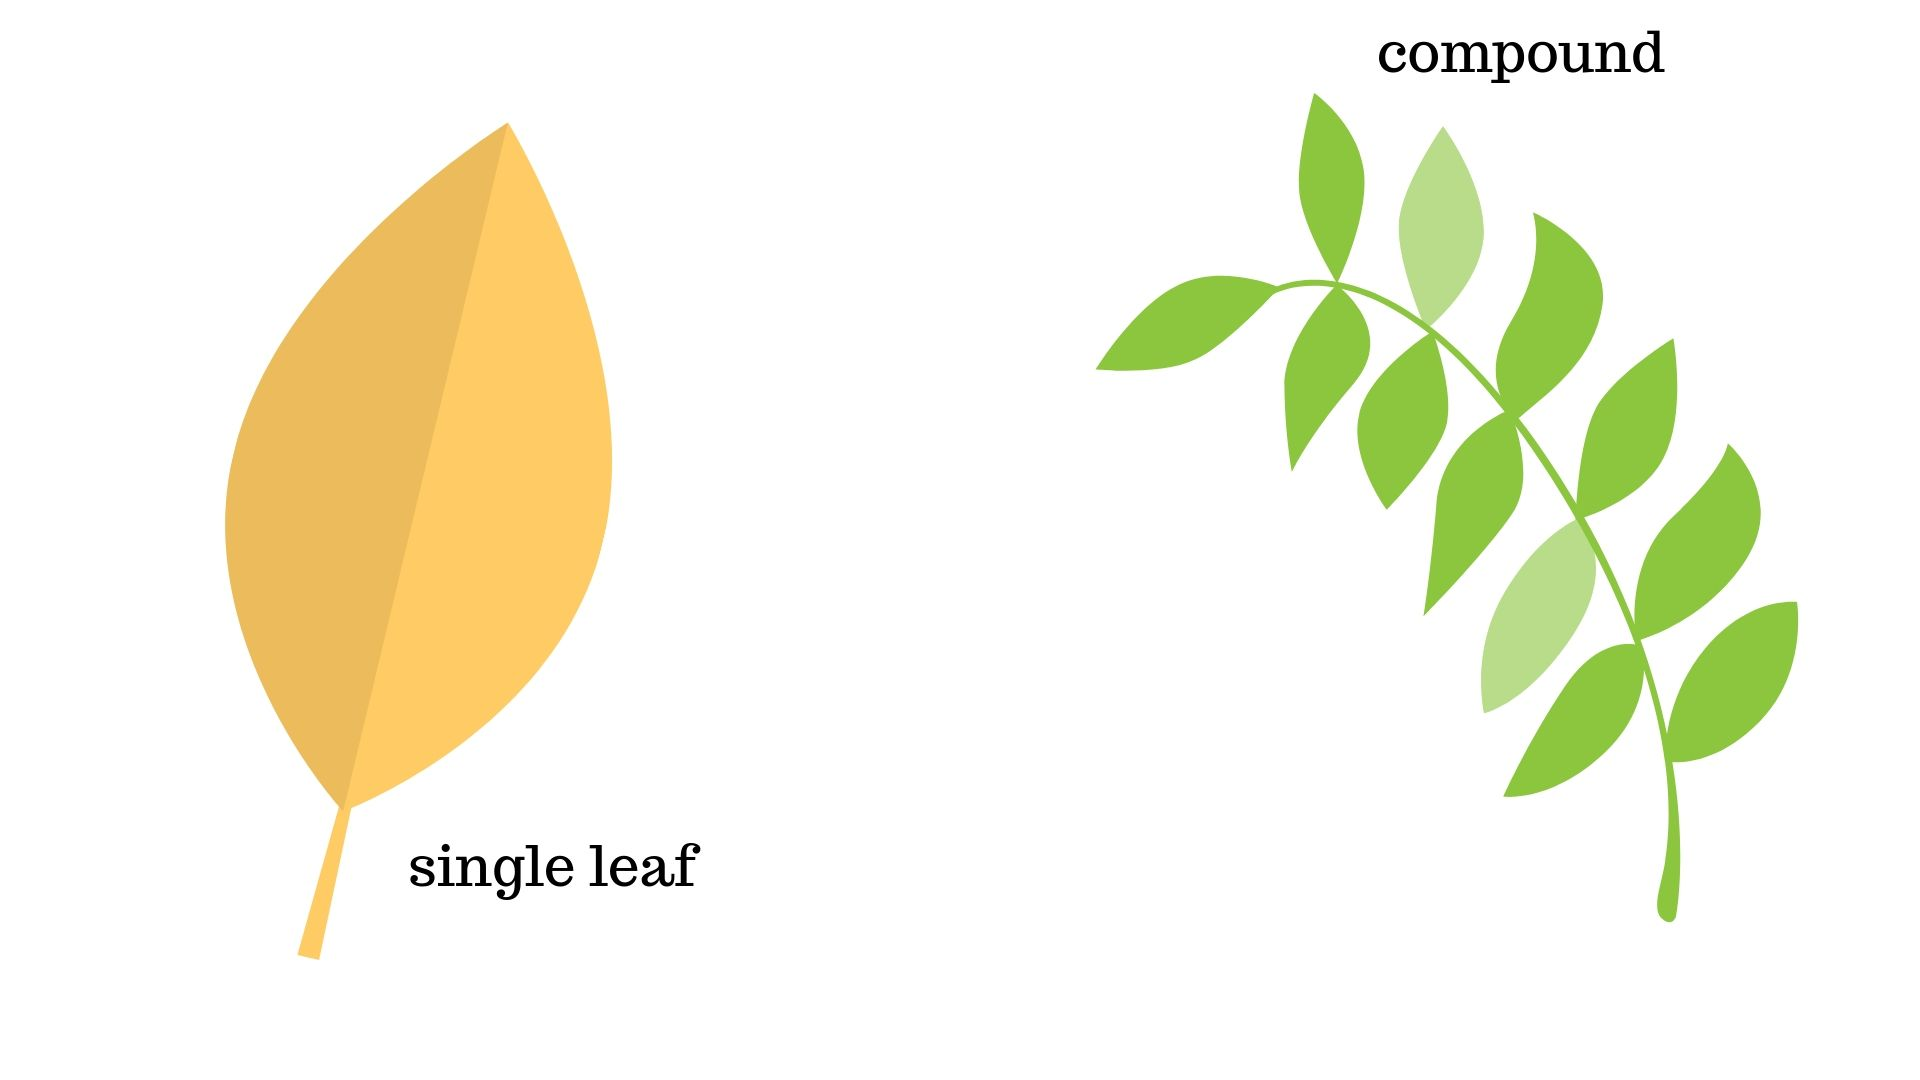 Image for Are the leaves compound?